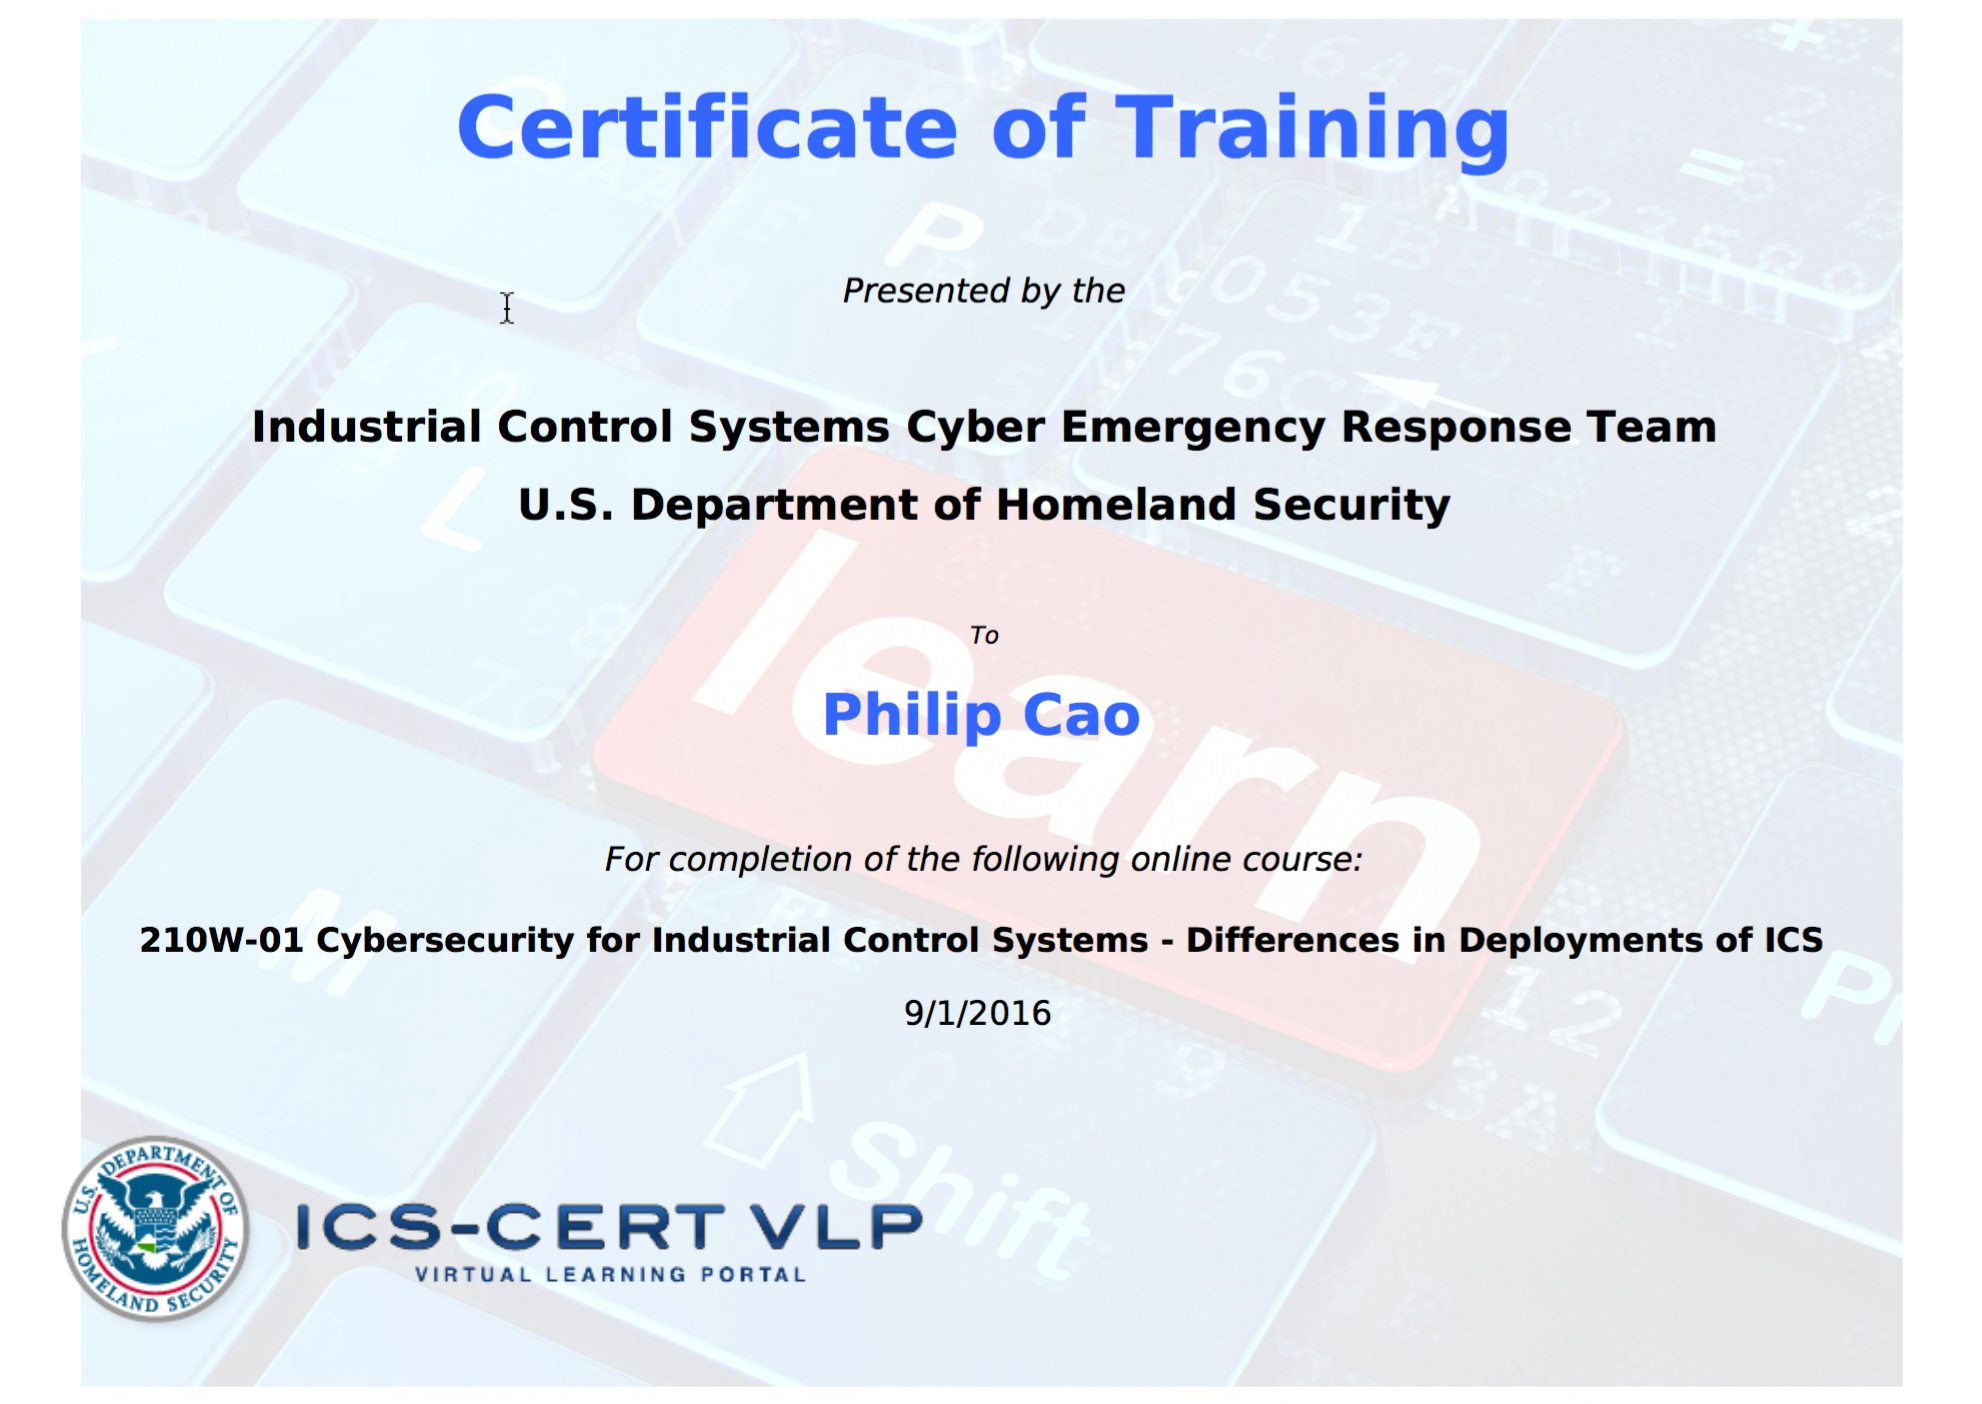 2016 philip hung cao ics cert cybersecurity for industrial control systems differences in deployments of ics certificate of trainingg xflitez Choice Image